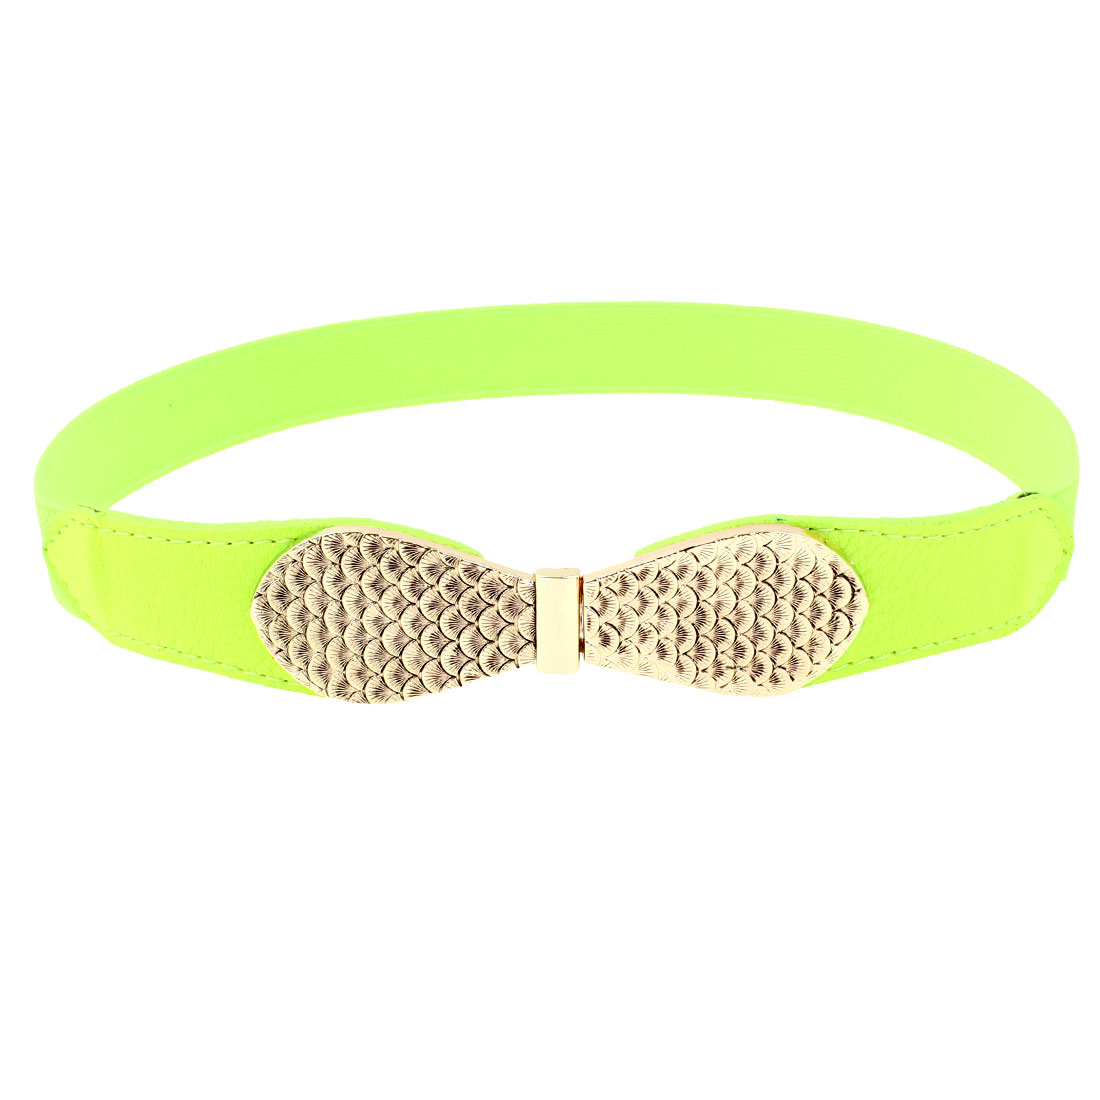 Ladies Fish Scale Print Interlocking Closure Skinny Cinch Belt Yellowgreen